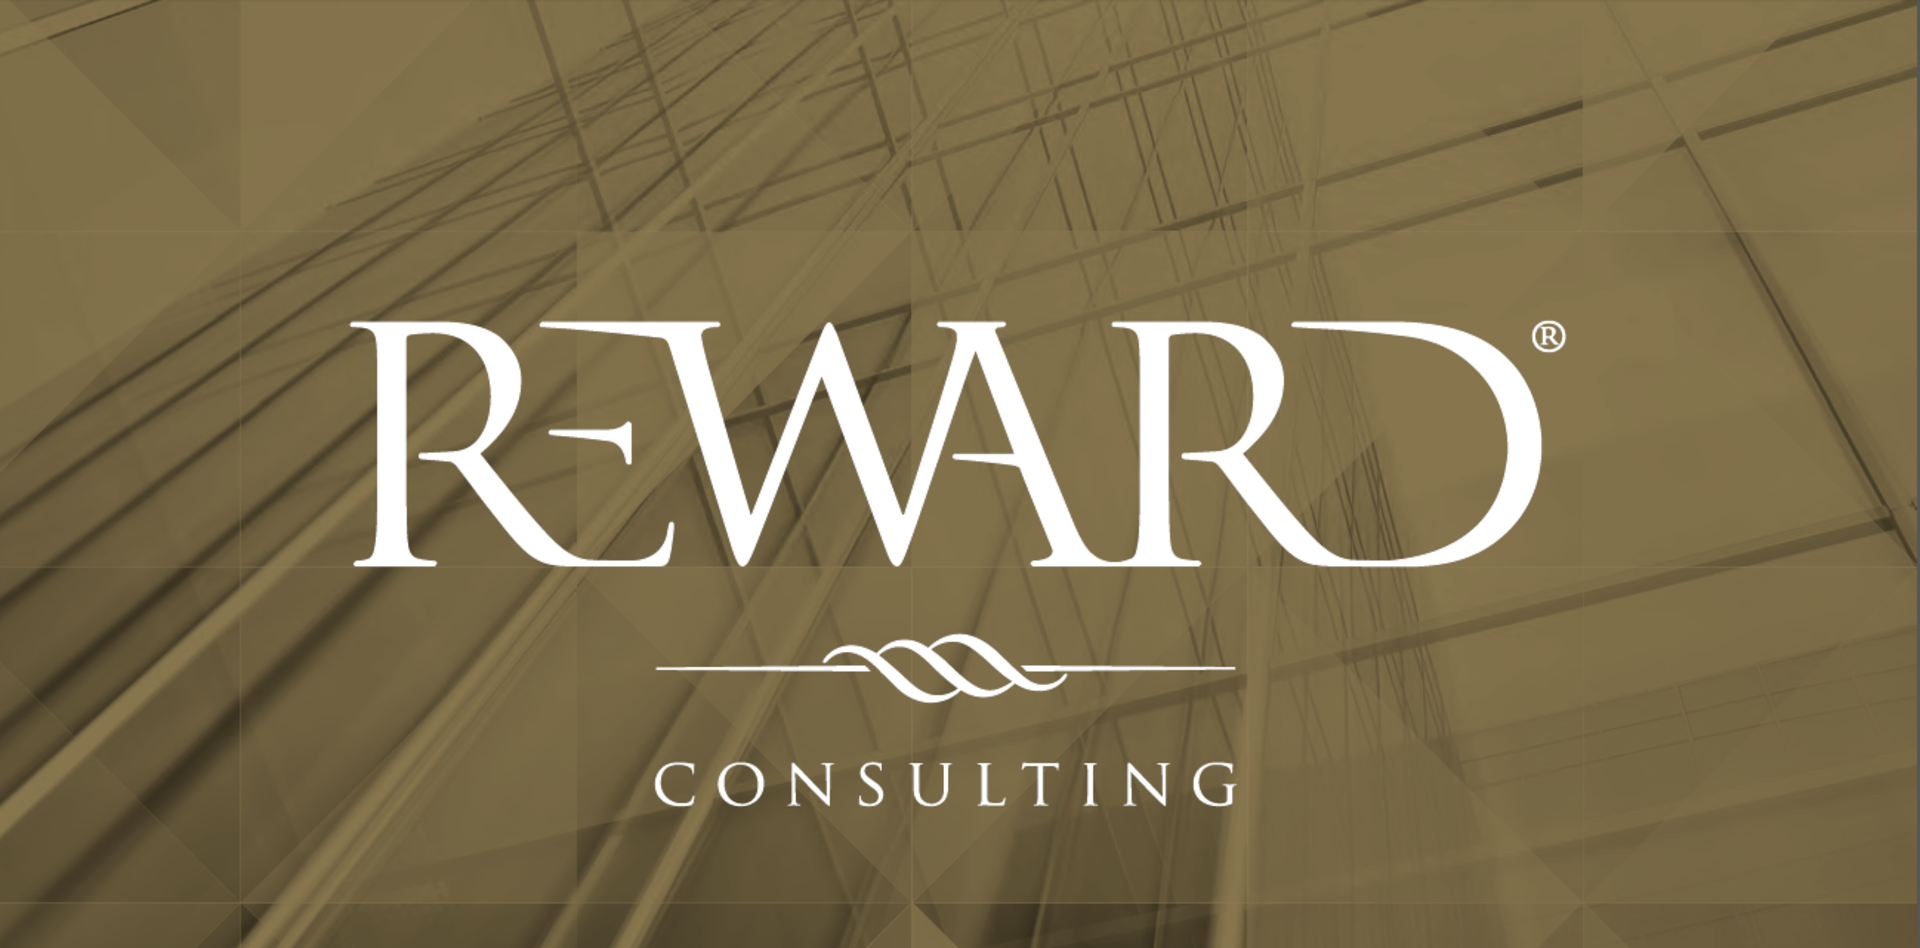 REWARD Consulting